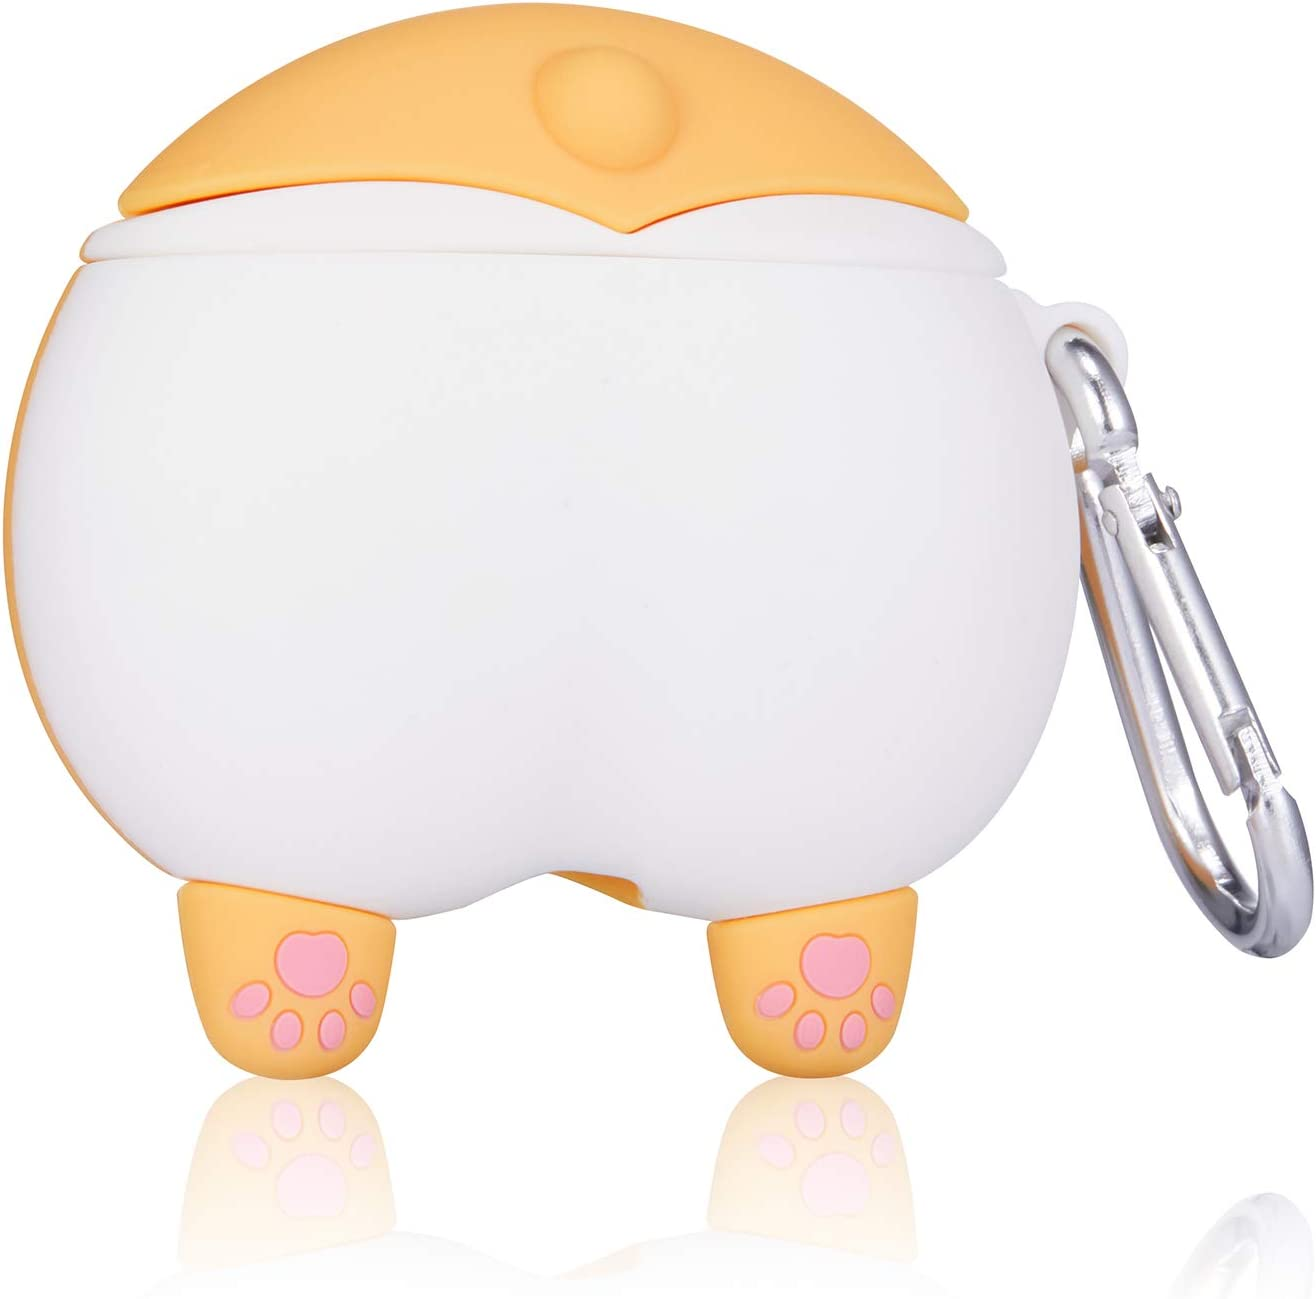 Cute Funny Animal Pattern Design for Girls Boys Kids Accessories Carabiner Protective Fun Fashion Character Skin Soft Silicone Cover for Air pods 2//1 Gift-Hero Corgi PP Cartoon Case for Airpods